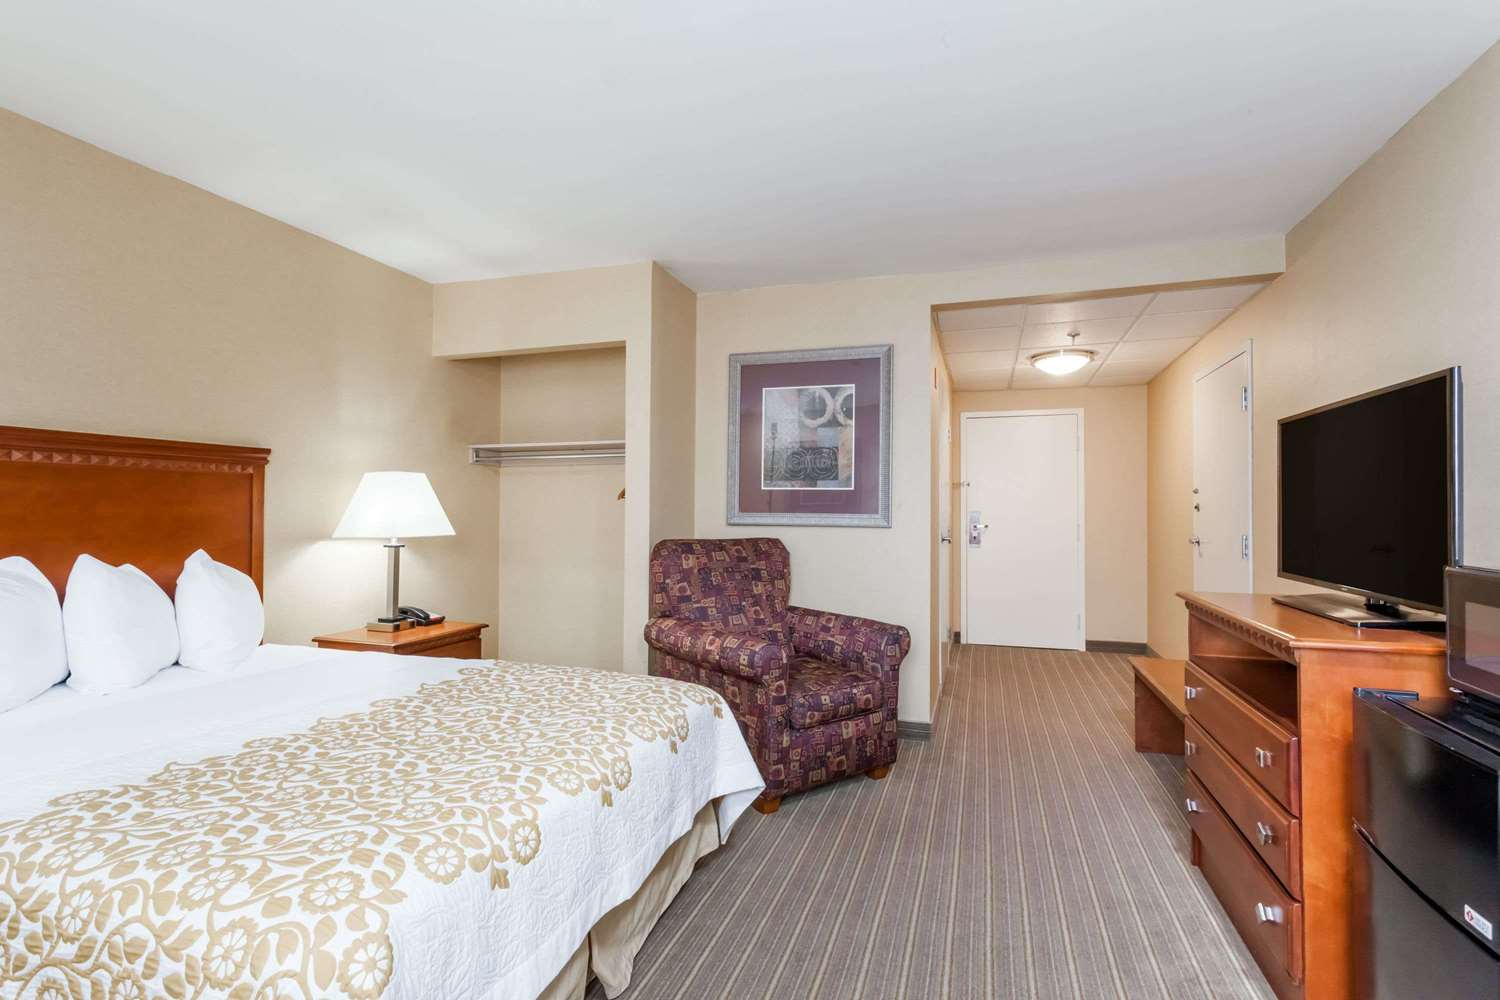 Bradley Airport Hotels Park And Fly